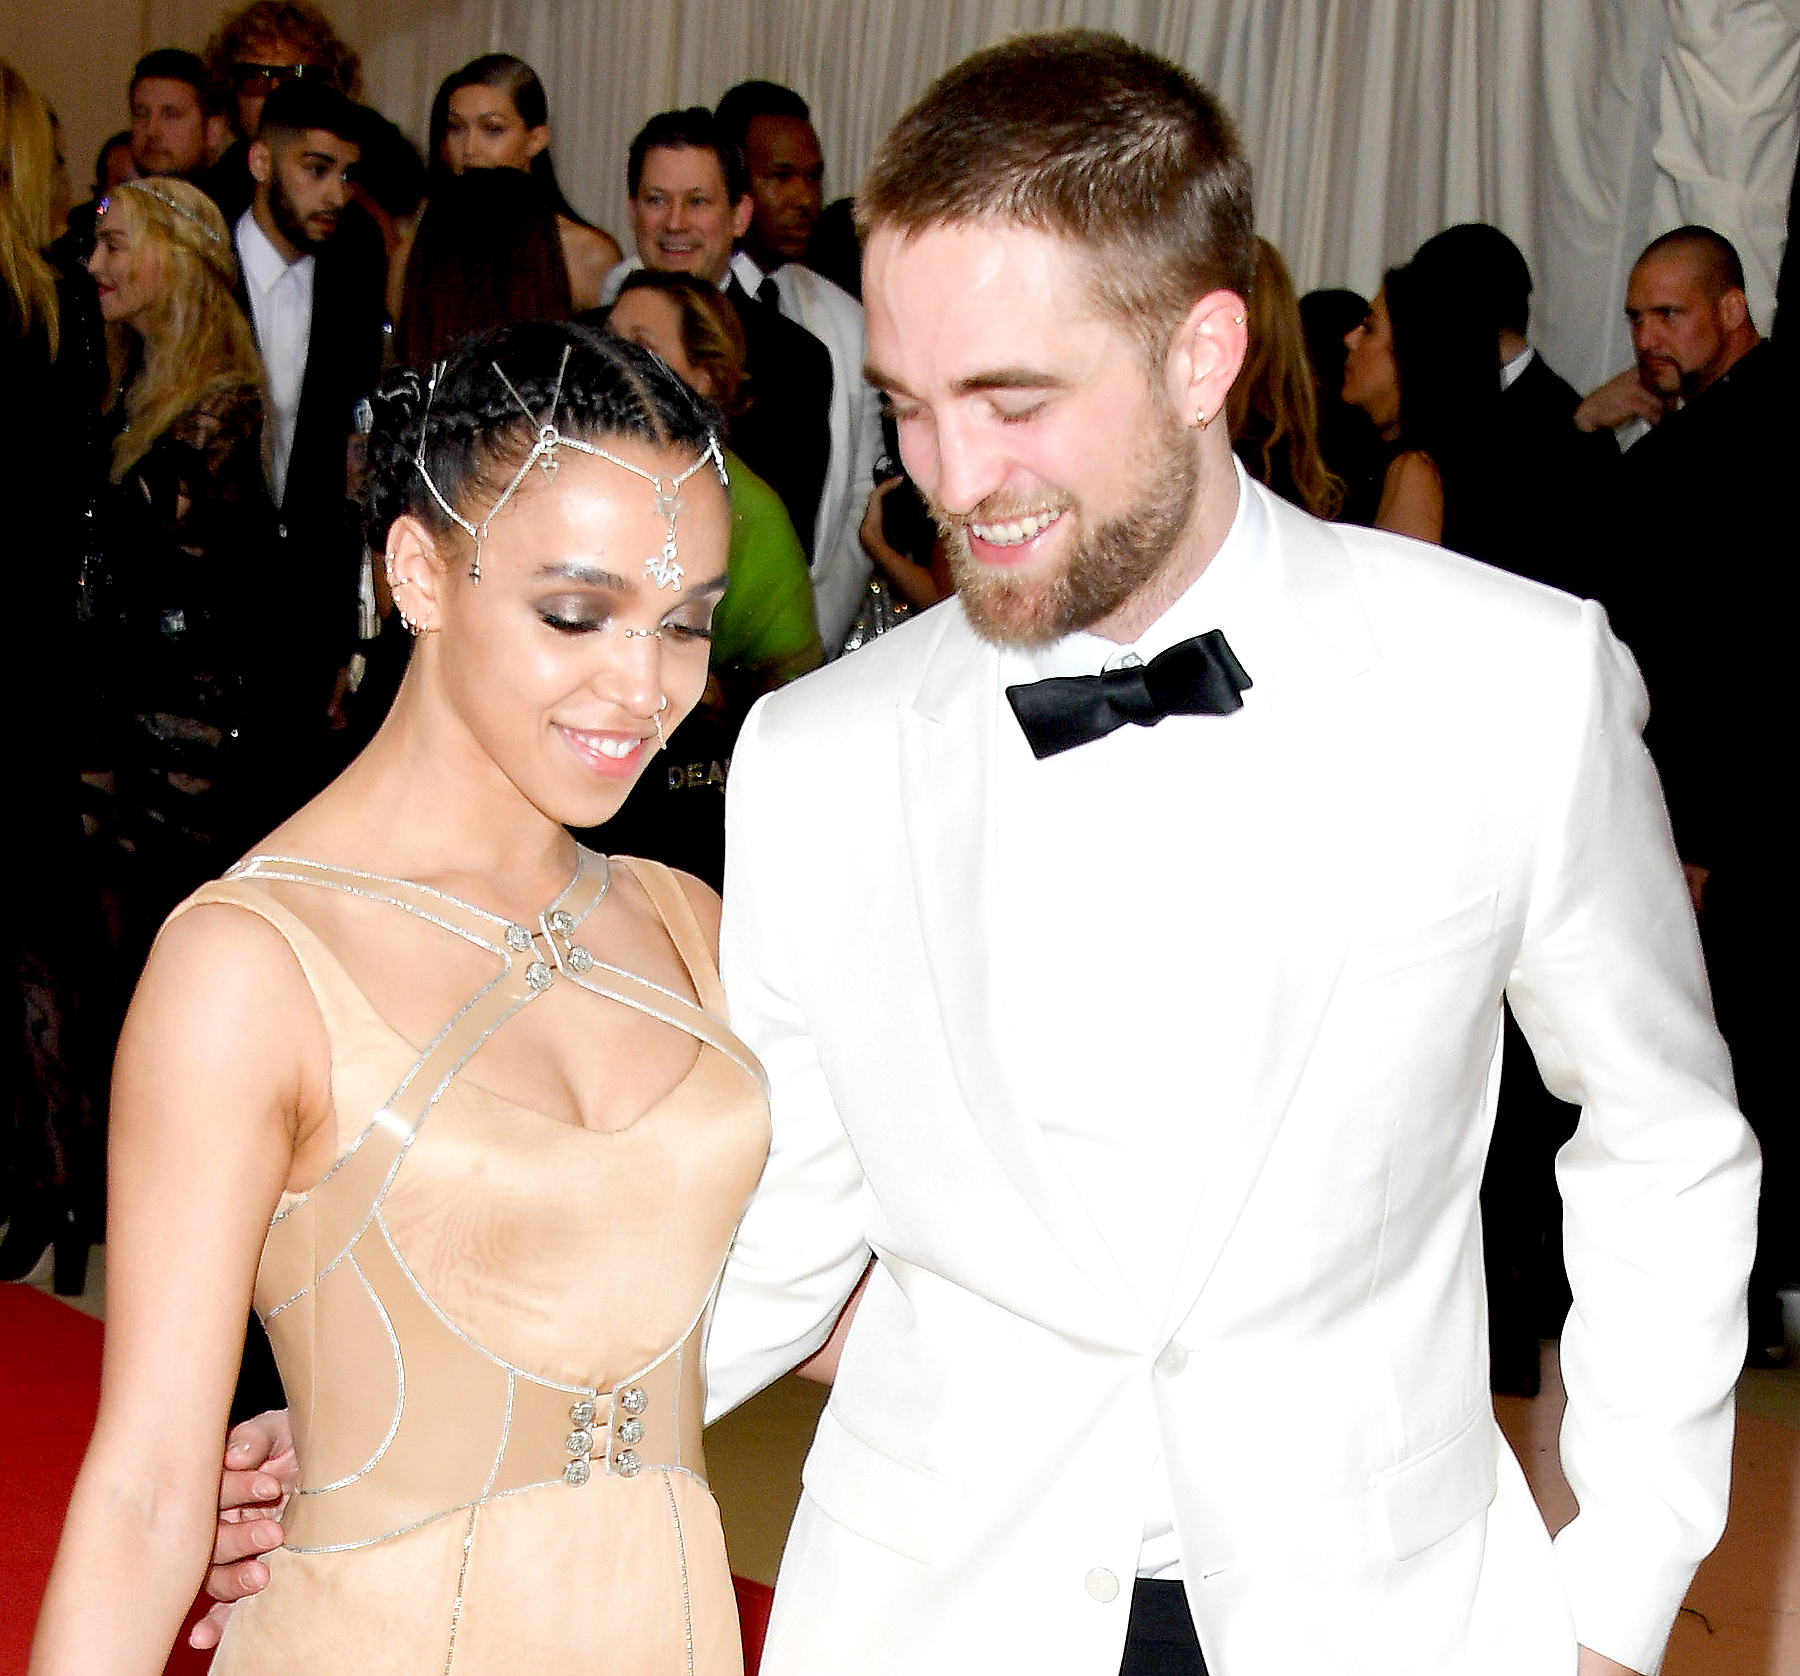 FKA Twigs and Robert Pattinson attend the 'Manus x Machina: Fashion in an Age of Technology' Costume Institute Gala at the Metropolitan Museum of Art on May 2, 2016 in New York City.